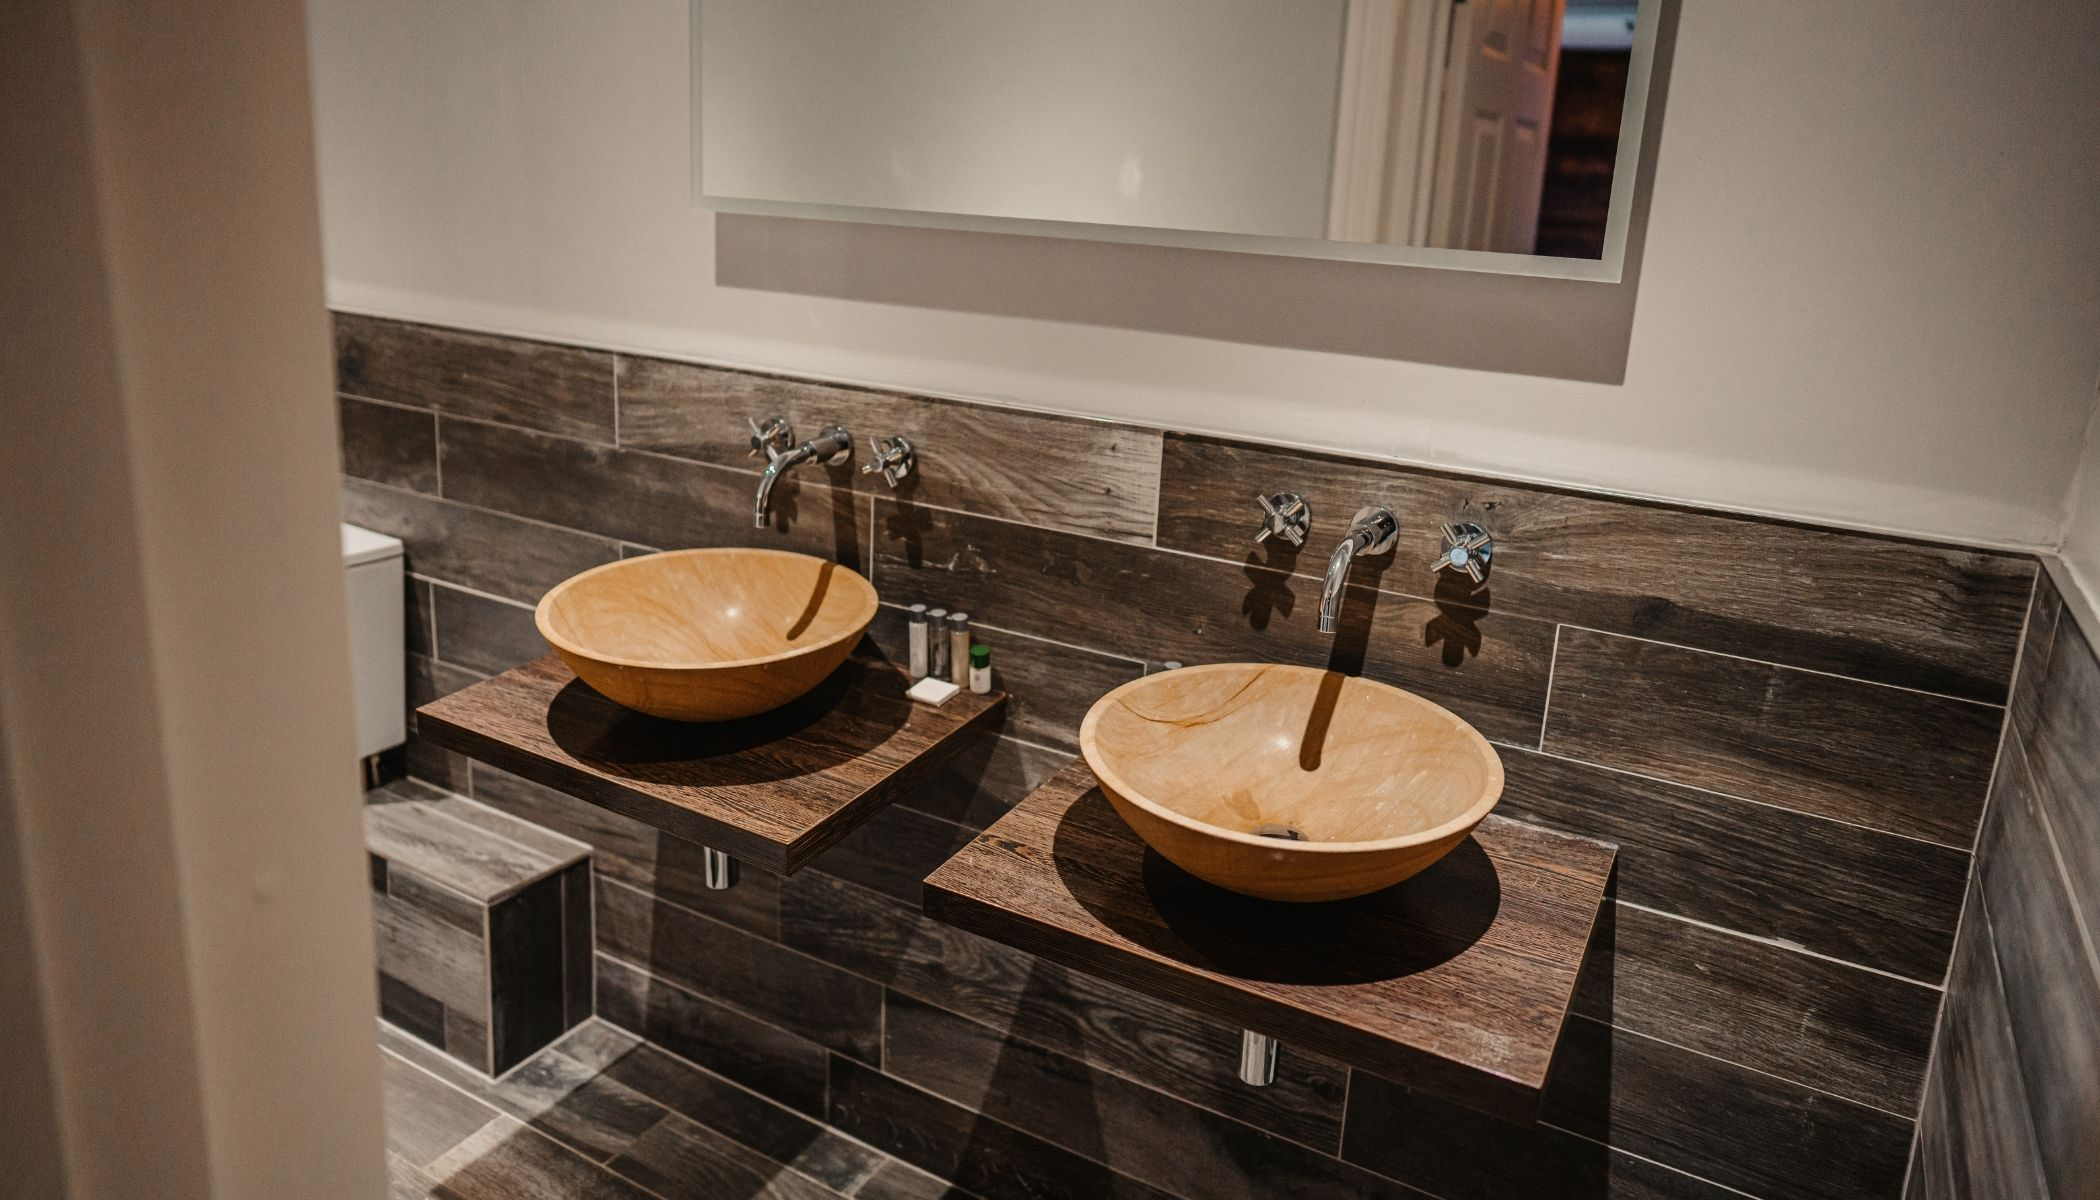 Sea View Double His & Hers Sinks